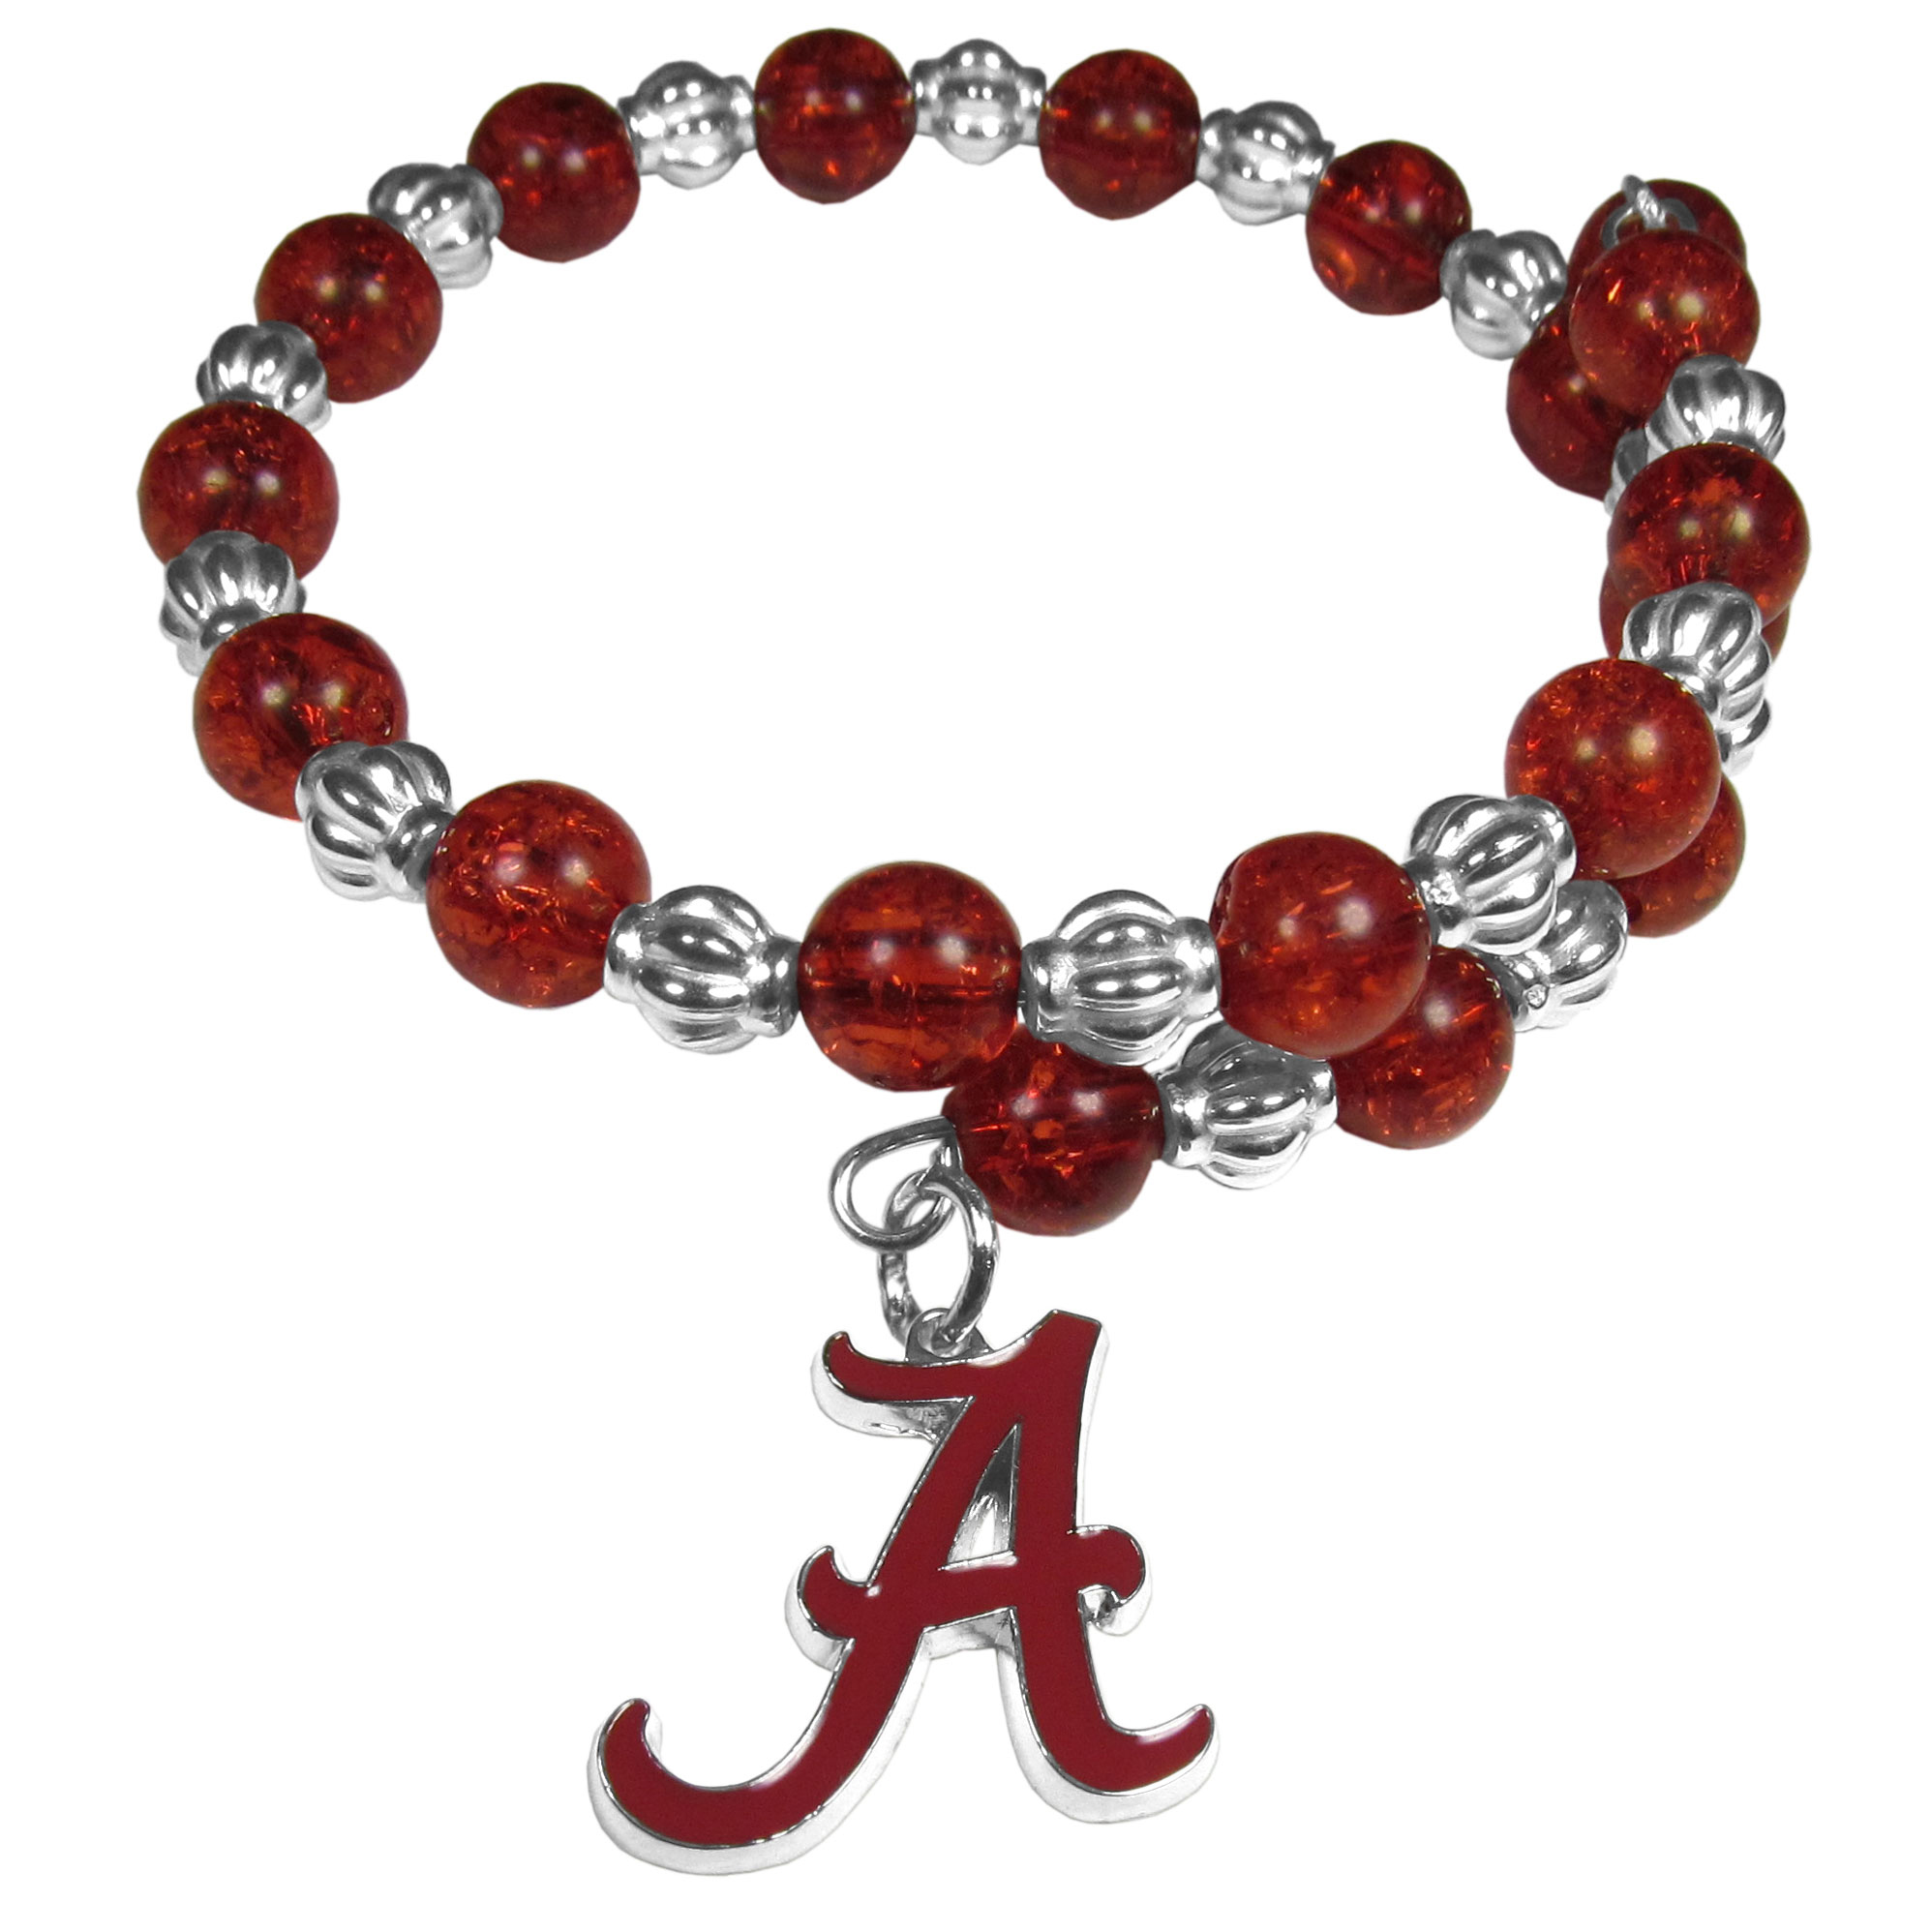 Alabama Crimson Tide Bead Memory Wire Bracelet - Our Alabama Crimson Tide memory wire bead bracelet is trendy way to show off your love of the game. The double wrap bracelet is completely covered in 7.5 mm crystals that are broken up with silvertoned beads creating a designer look with a sporty twist. The bracelet features a fully cast, metal team charm that has expertly enameled team colors. This fashion jewelry piece is a must-have for the die-hard fan that chic look that can dress up any outfit.